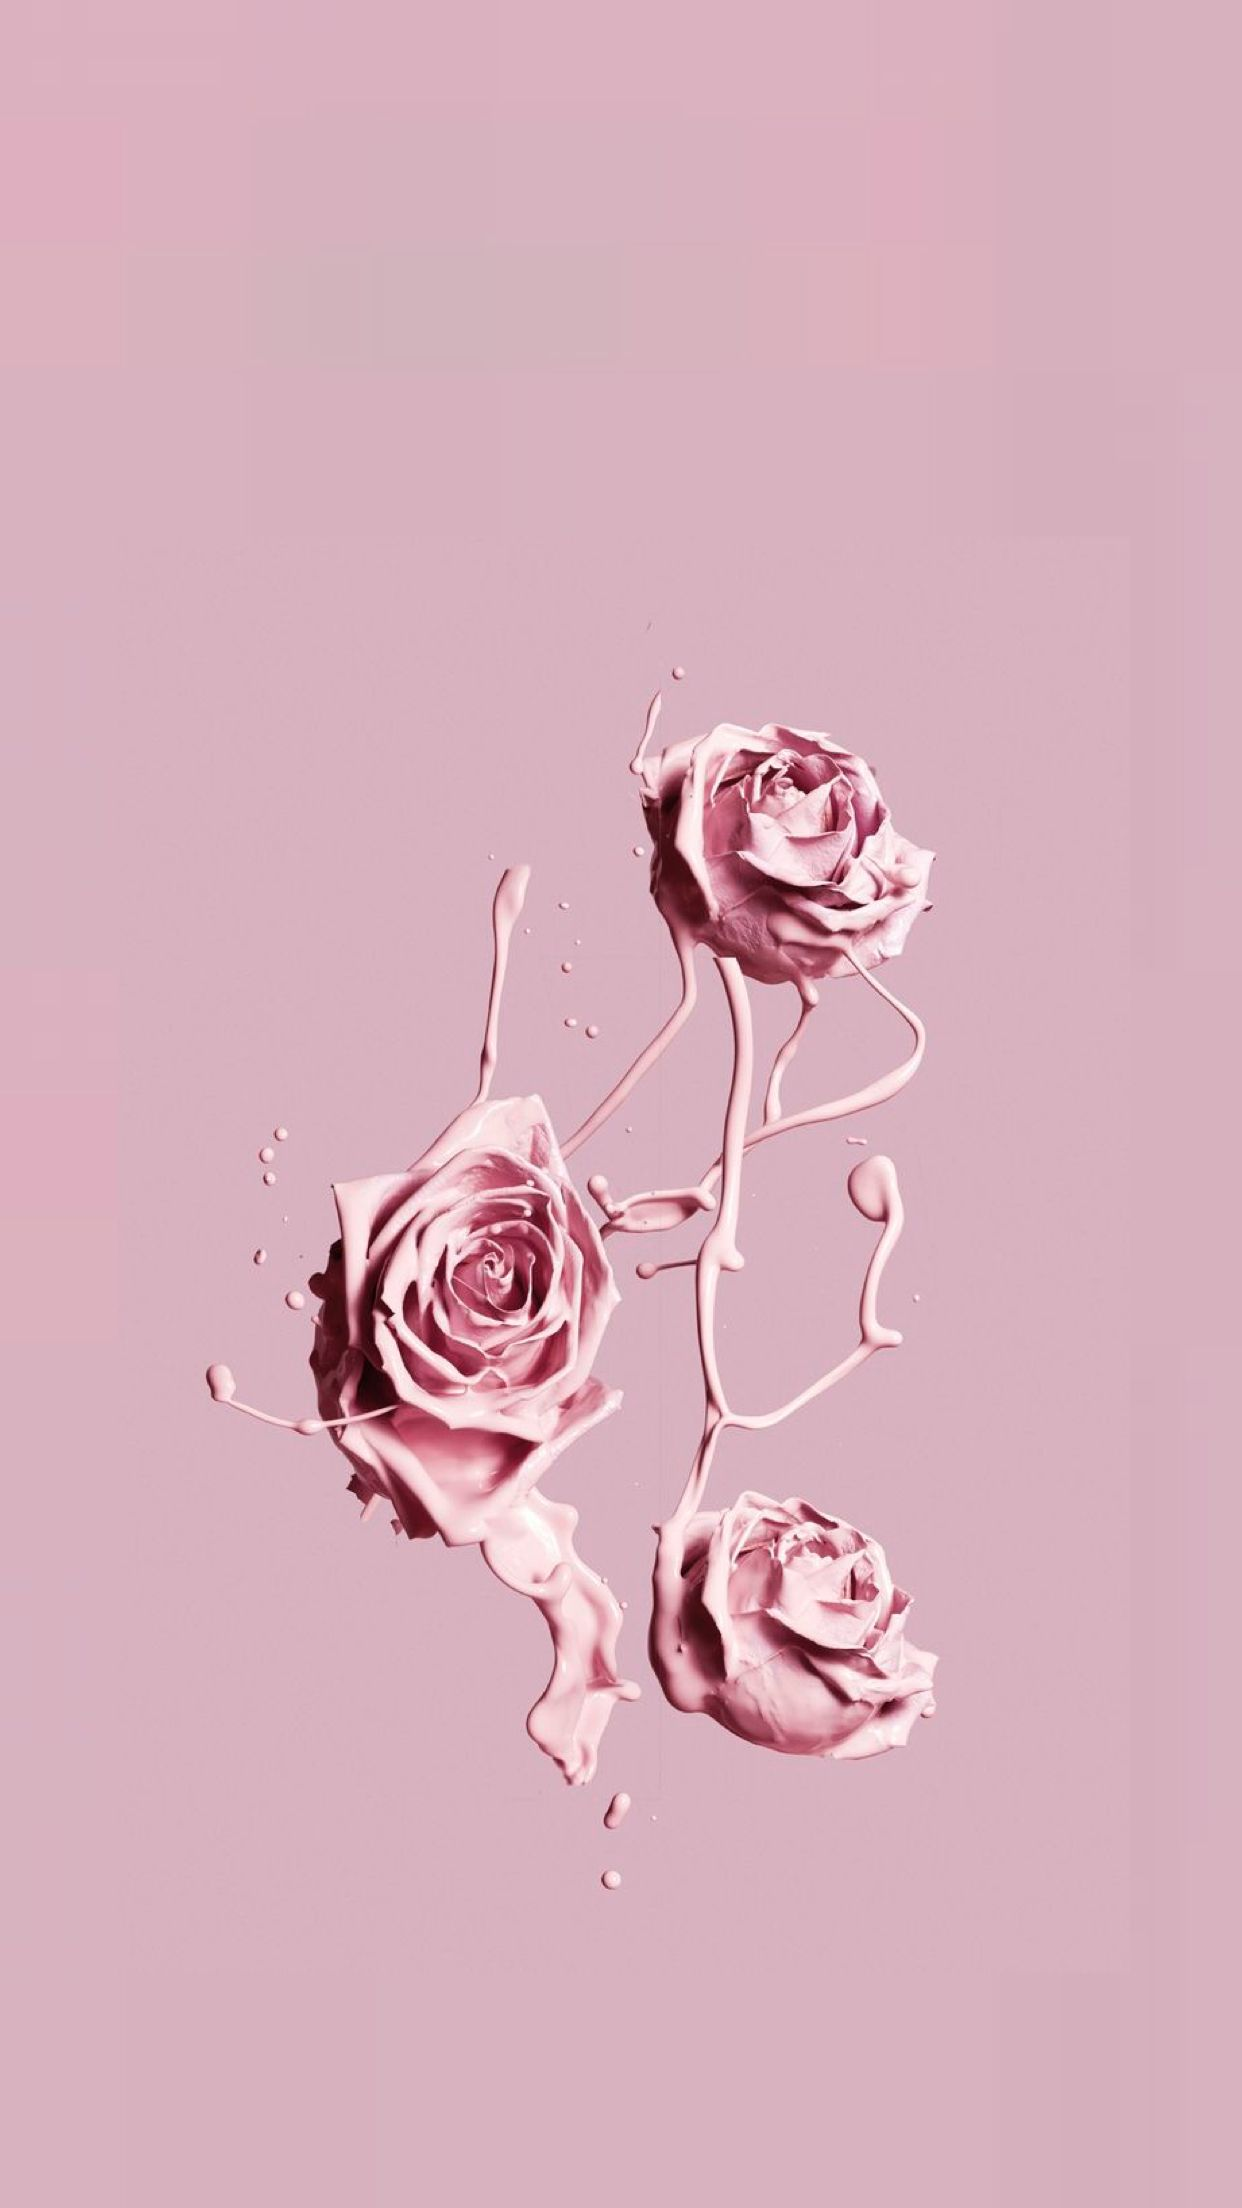 Aesthetic Pink Iphone Wallpapers Top Free Aesthetic Pink Iphone